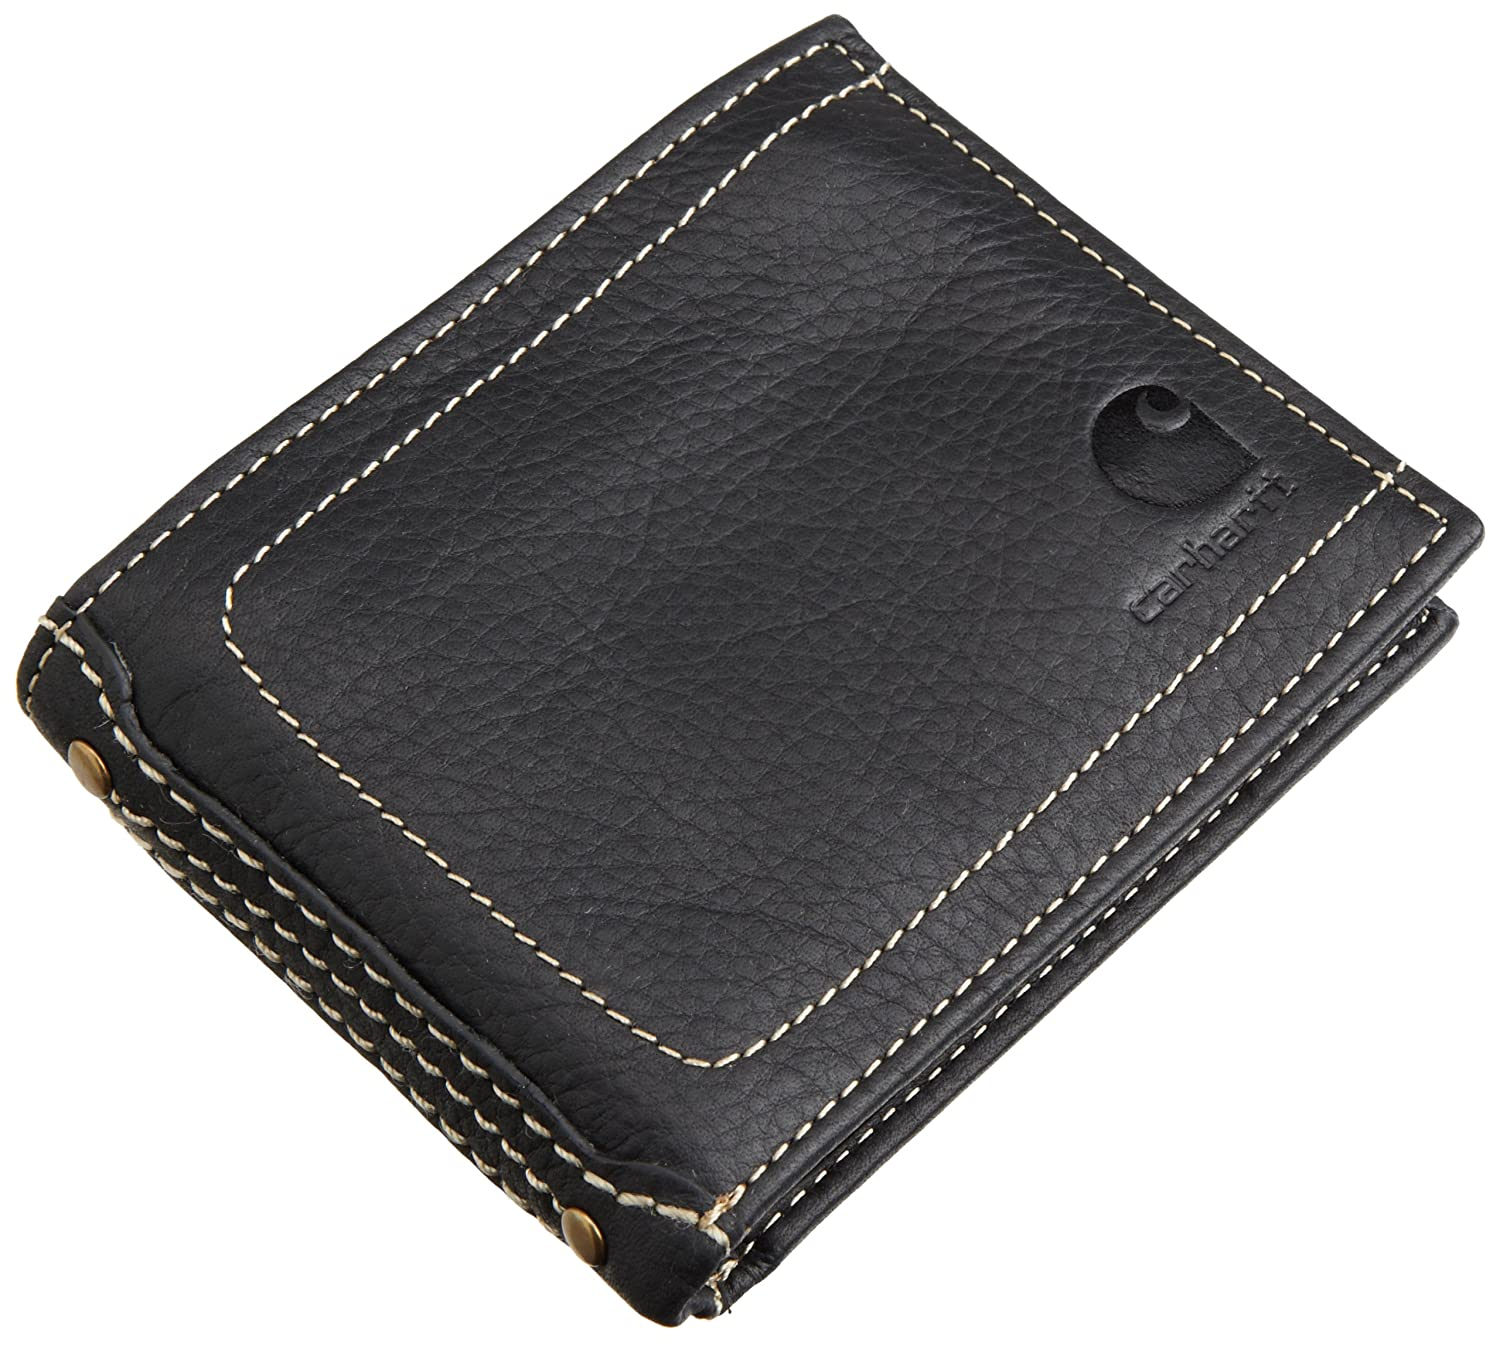 d37984416c4 Carhartt Men's Trifold Wallet, Black, One Size at Amazon Men's Clothing  store: Carhartt Wallets For Men